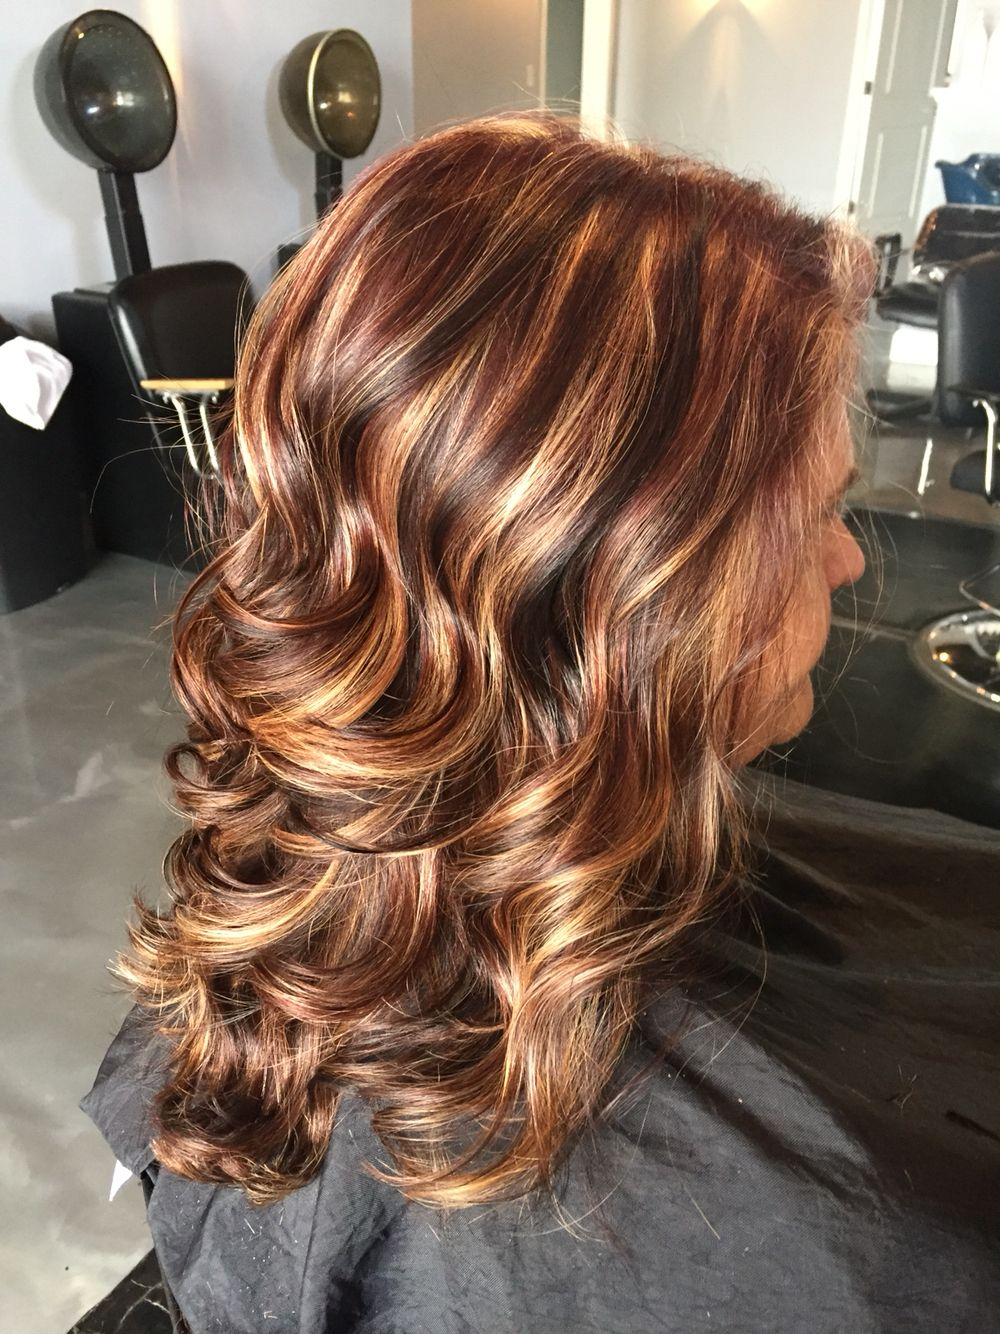 Maghagony All Over Base With Thick Chunky Honey Highlights And Chunky Dark Brown Lowlight Hair Highlights And Lowlights Blonde Hair With Highlights Hair Styles